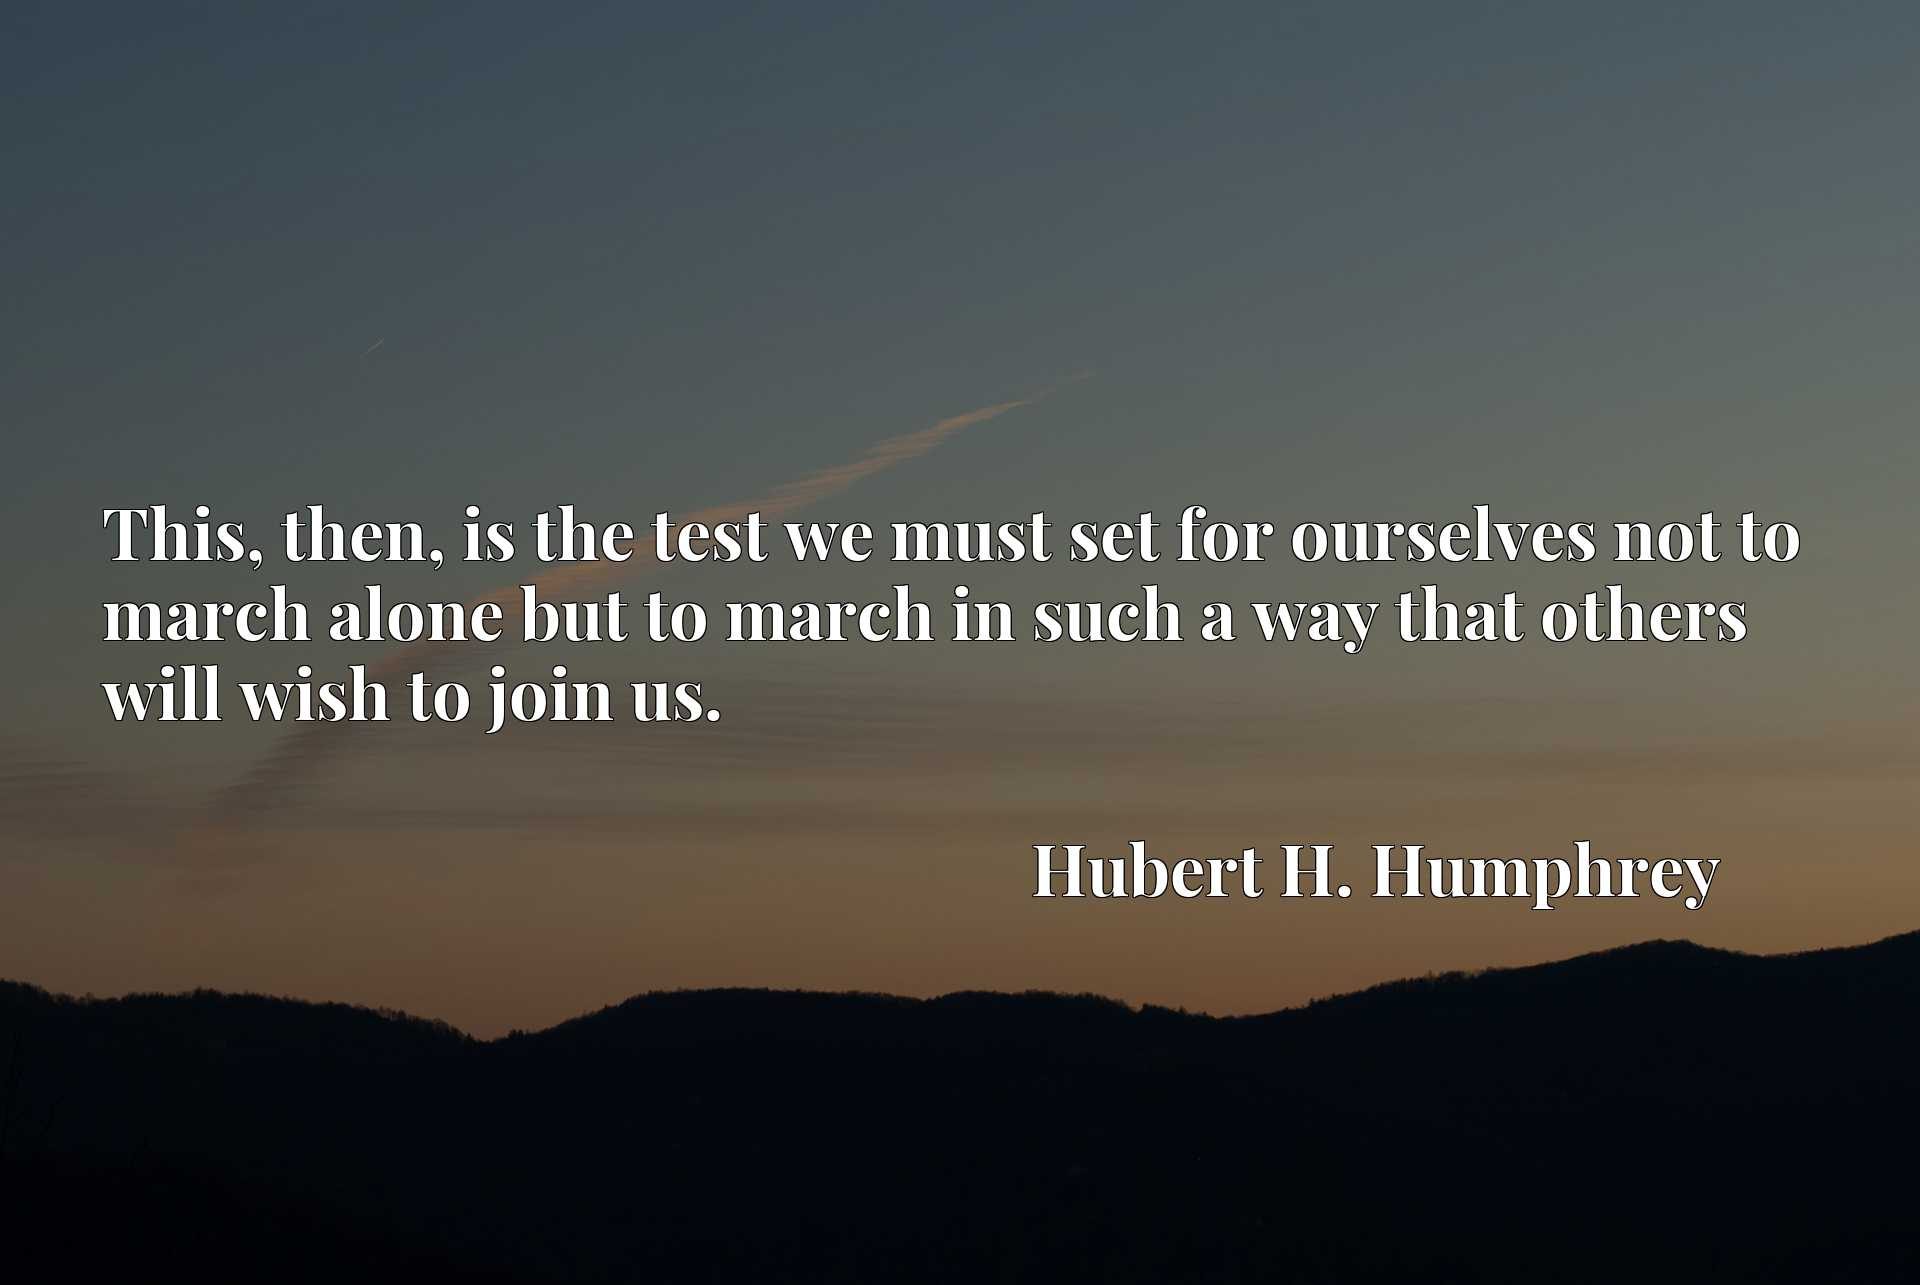 This, then, is the test we must set for ourselves not to march alone but to march in such a way that others will wish to join us.